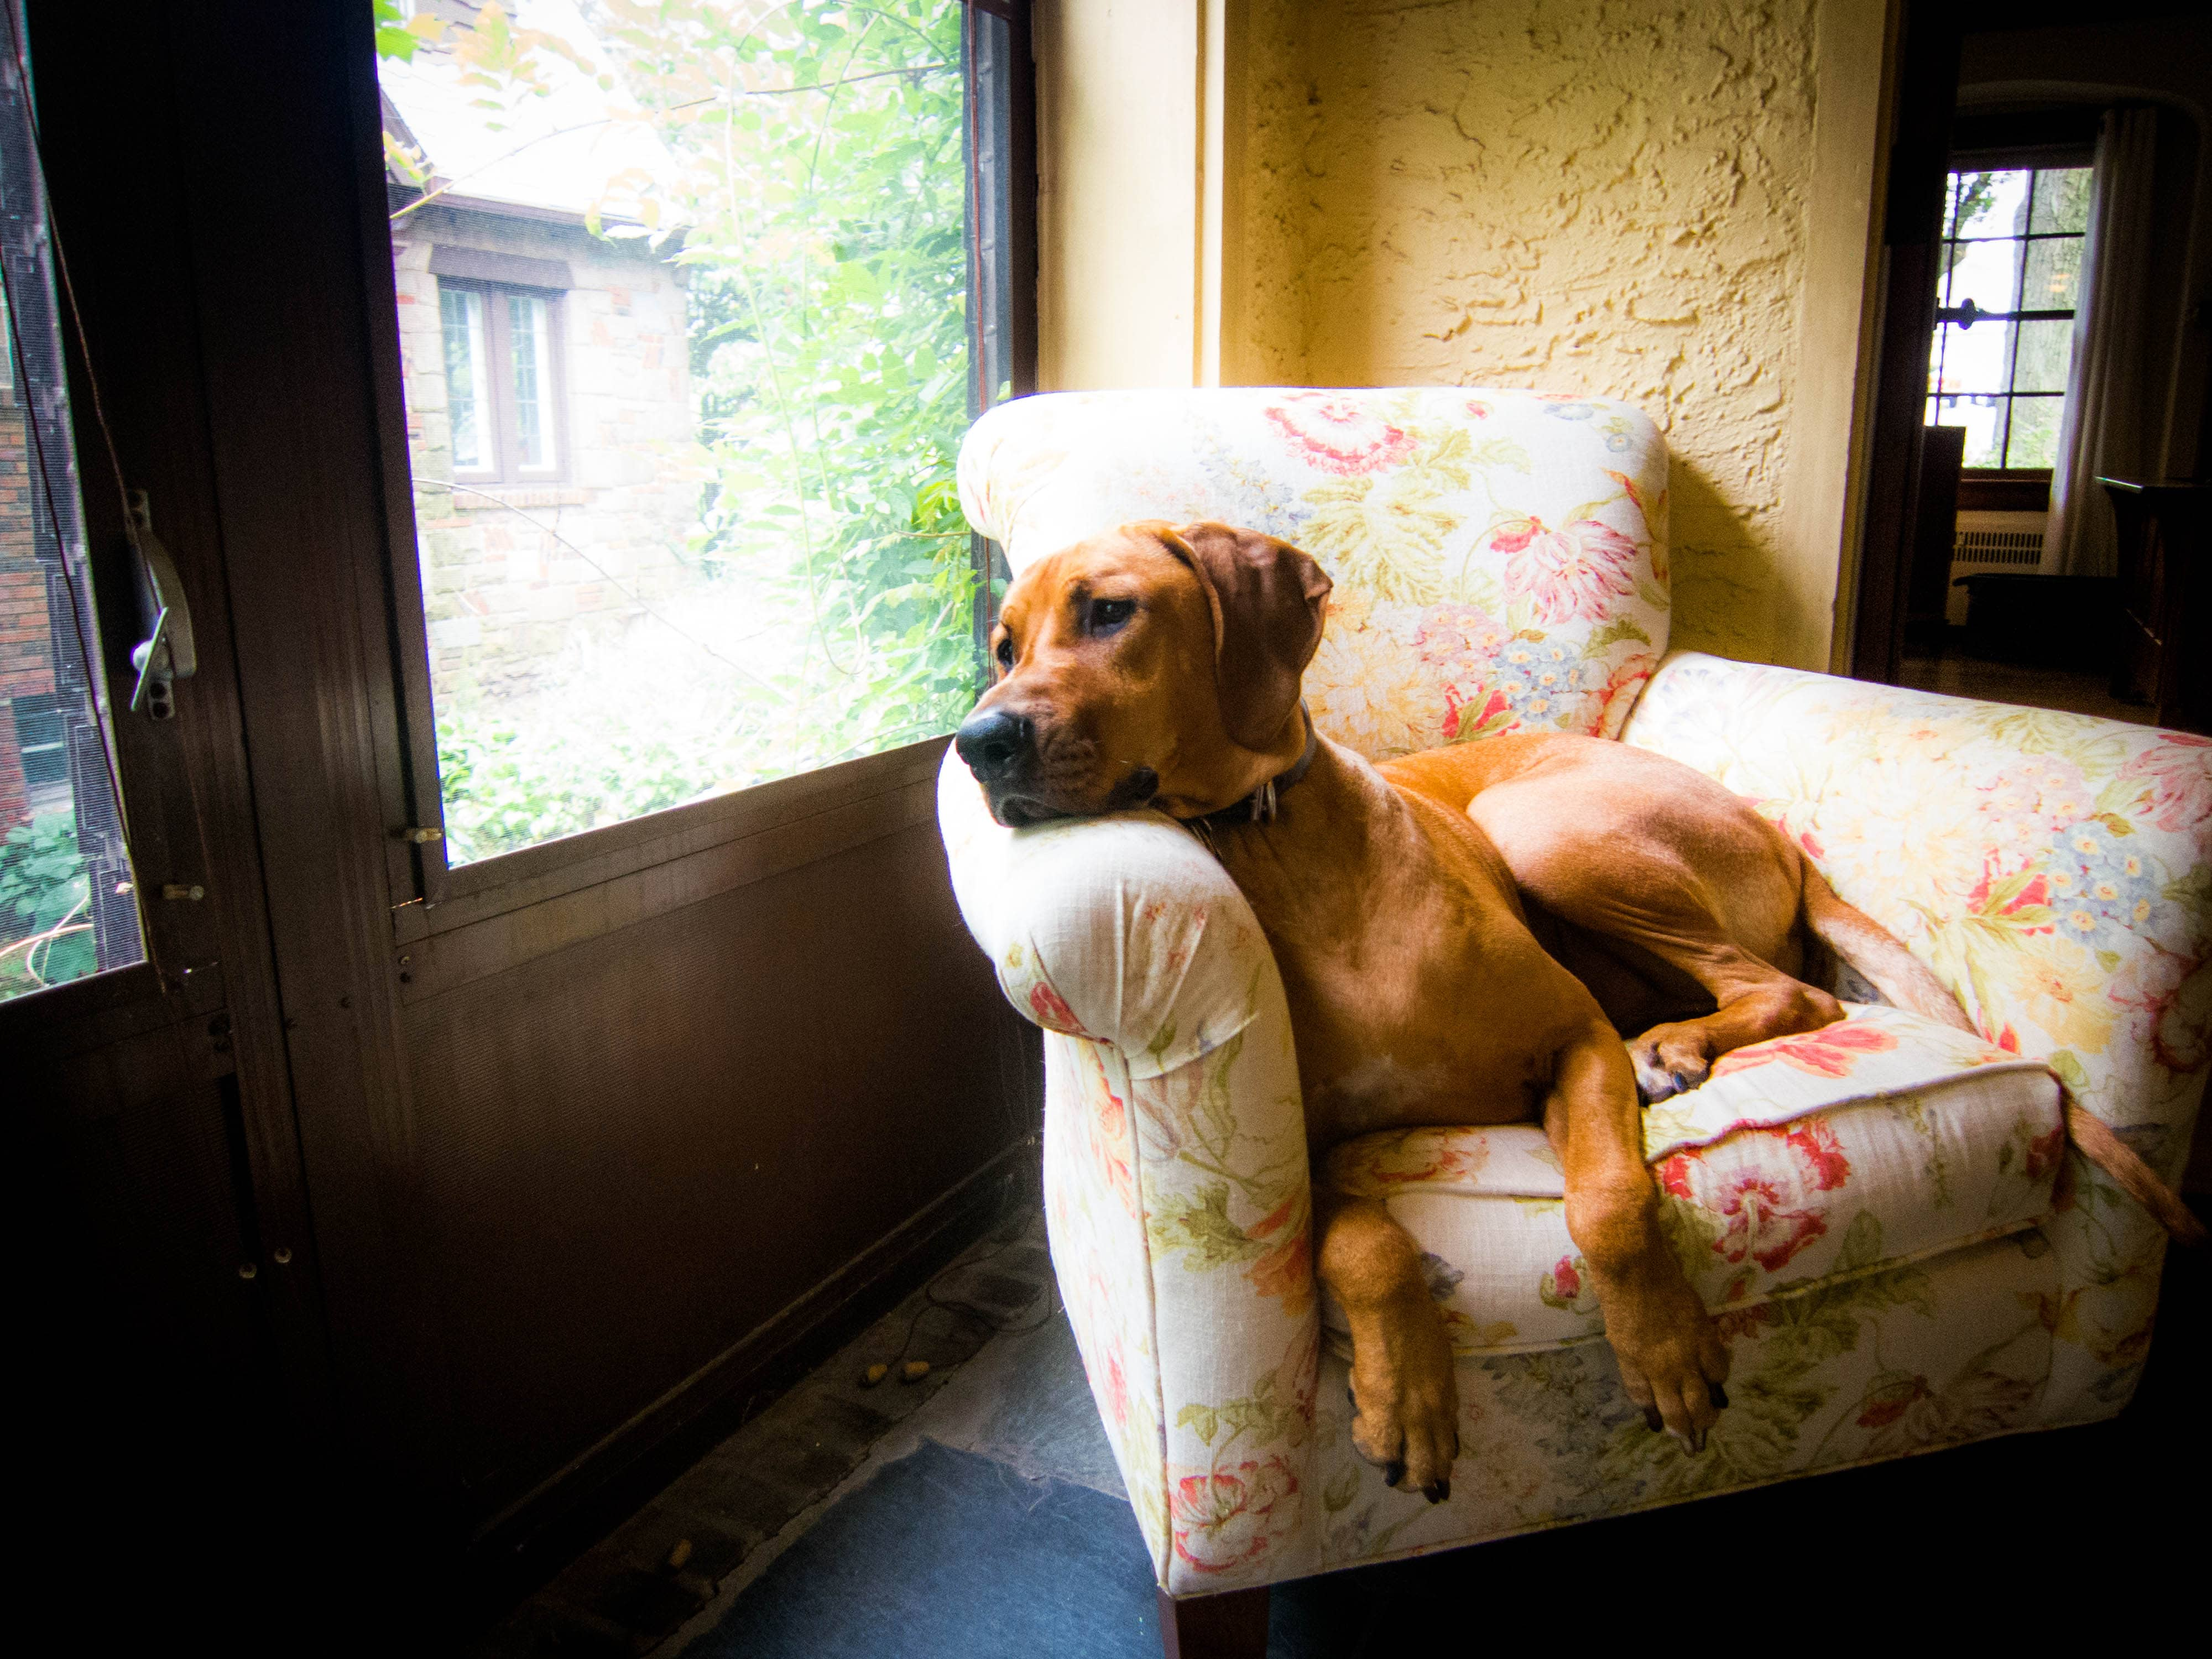 Rhodesian Ridgeback, dog adventure, dog blog, pet photos. dog photos, puppy photos